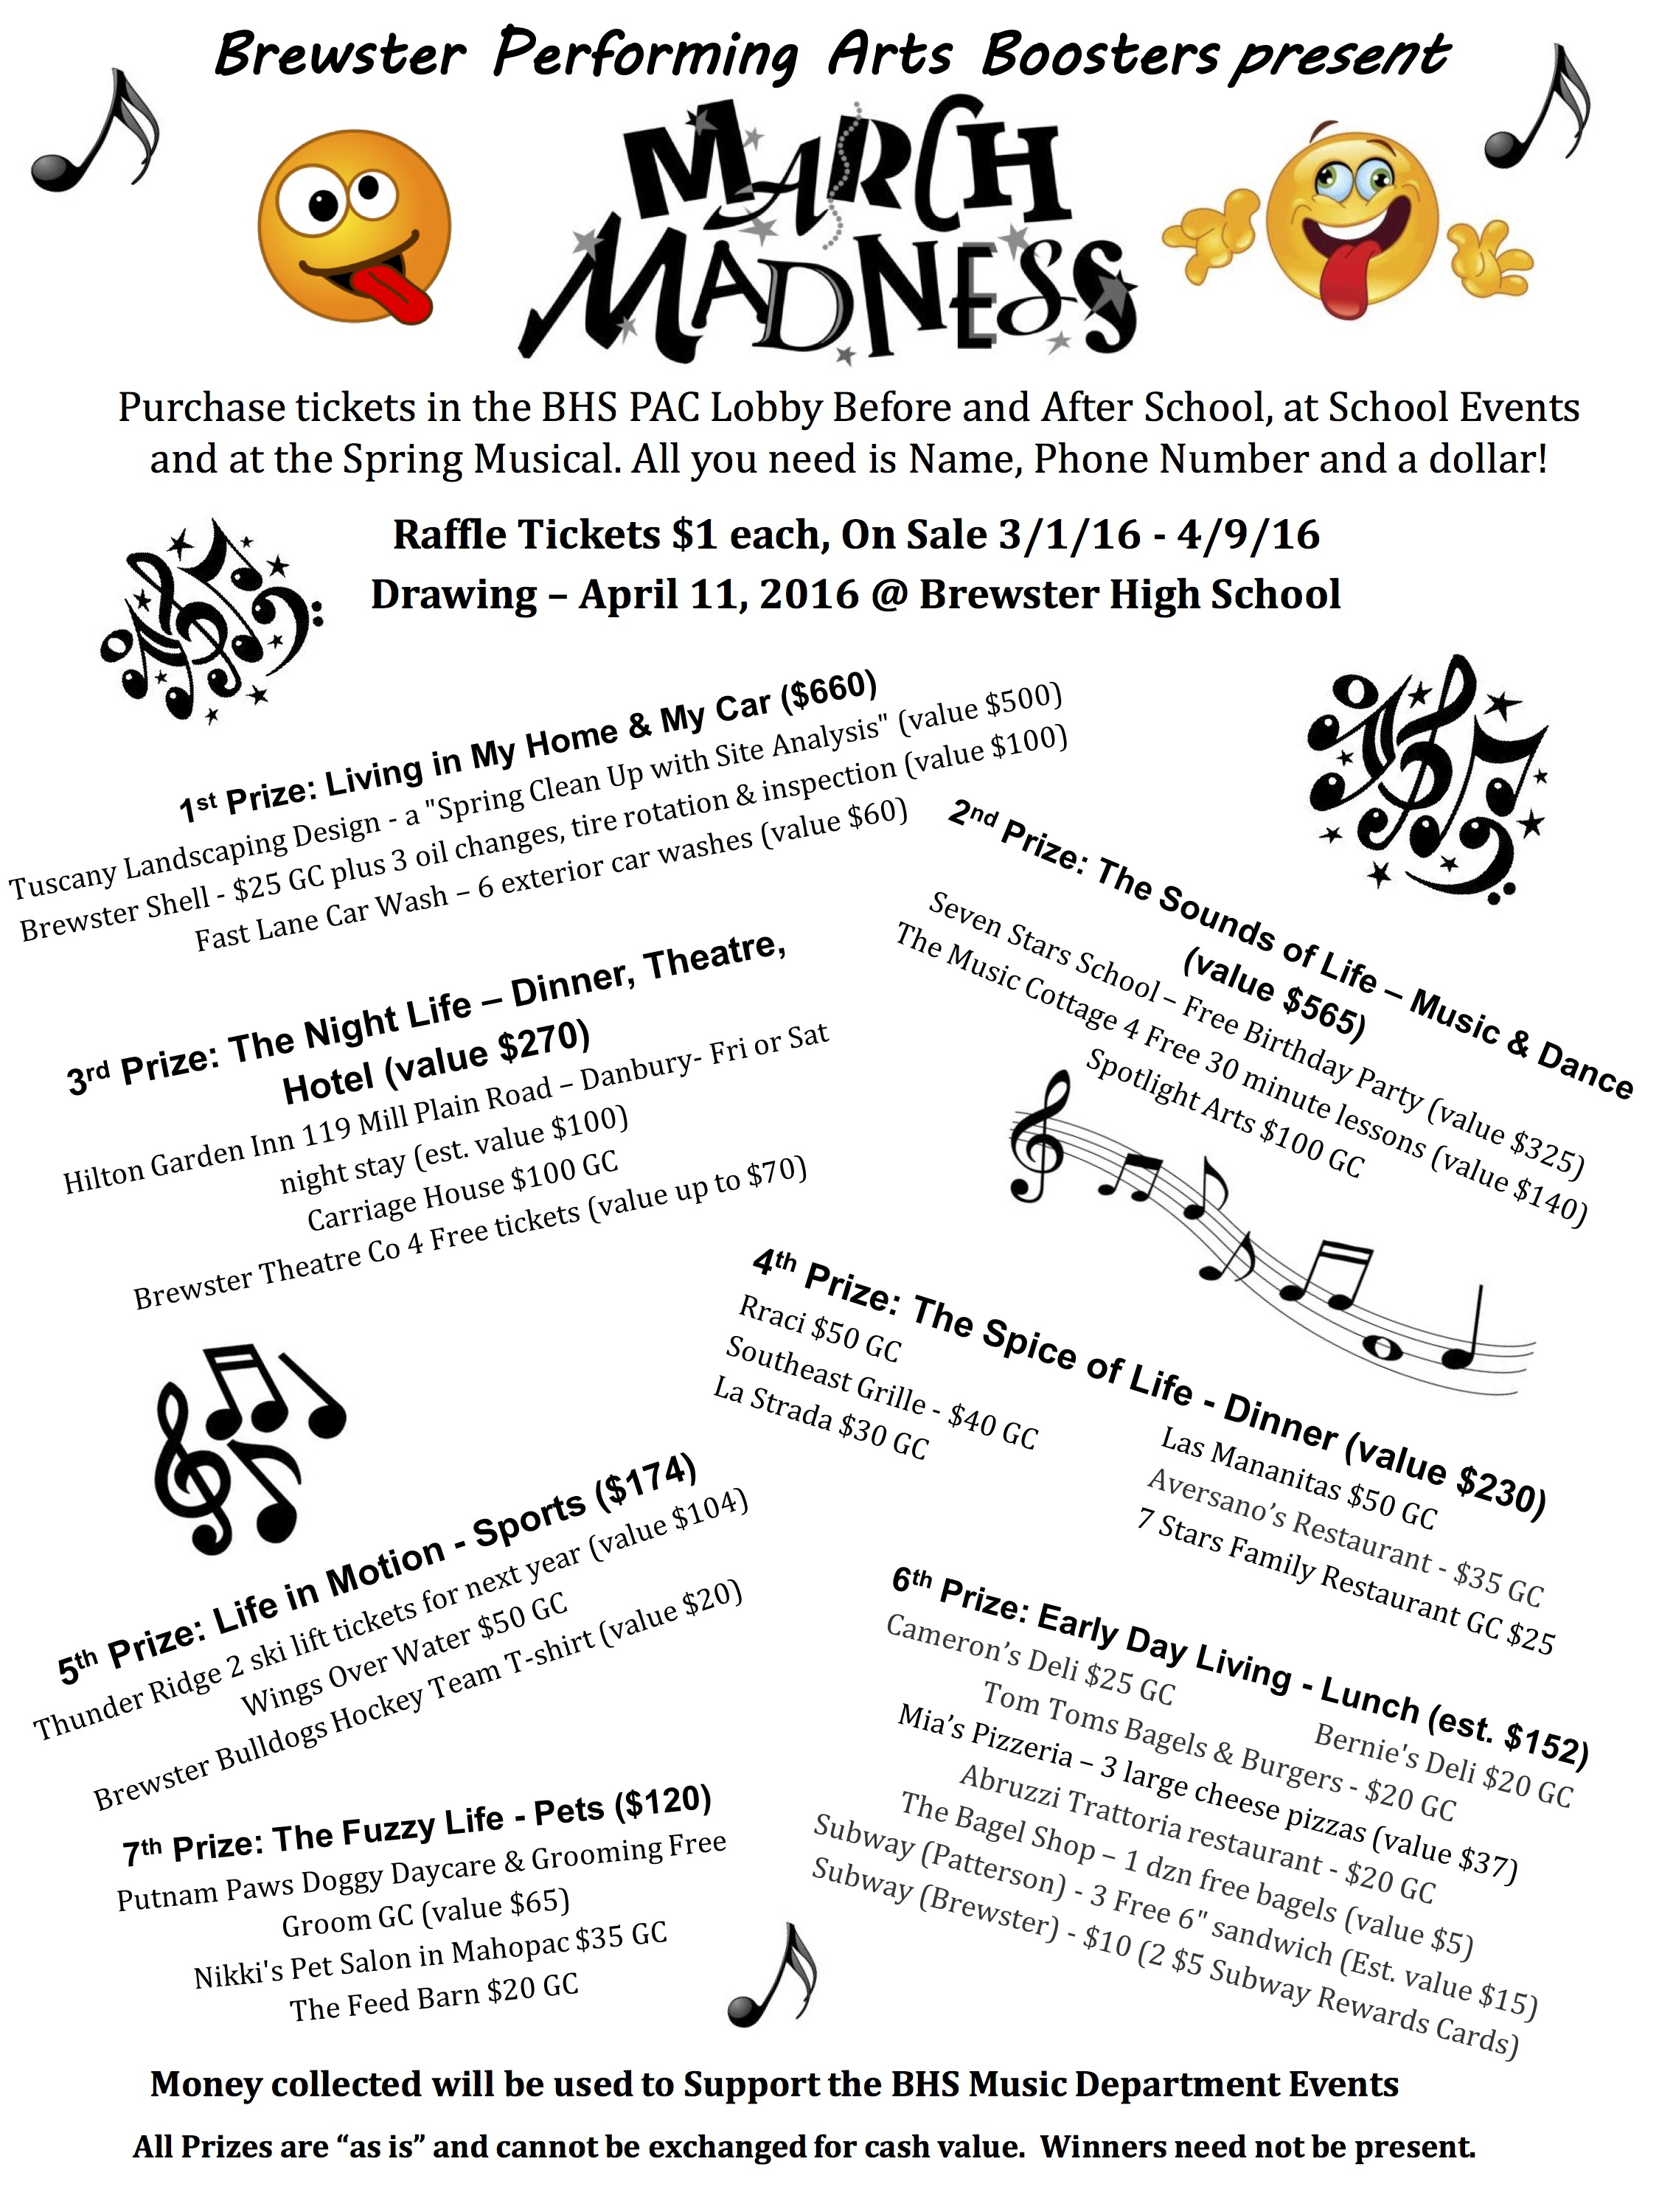 march madness raffle to support bhs performing arts